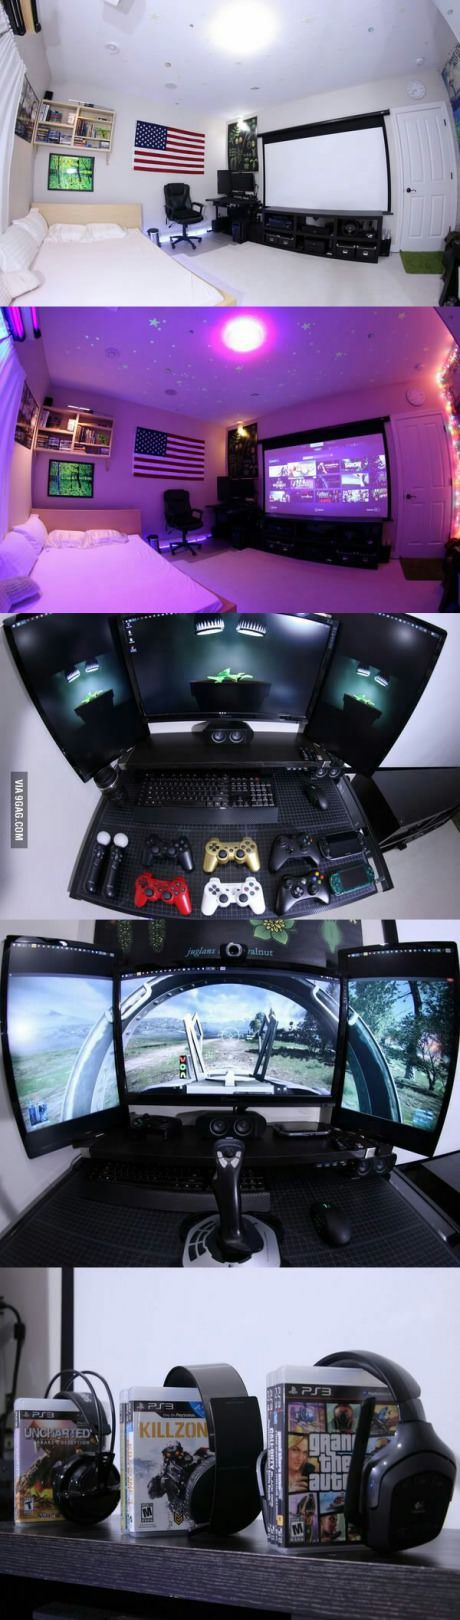 I want this gaming room so bad I really do tho we are one step closer getting screen with taxes!